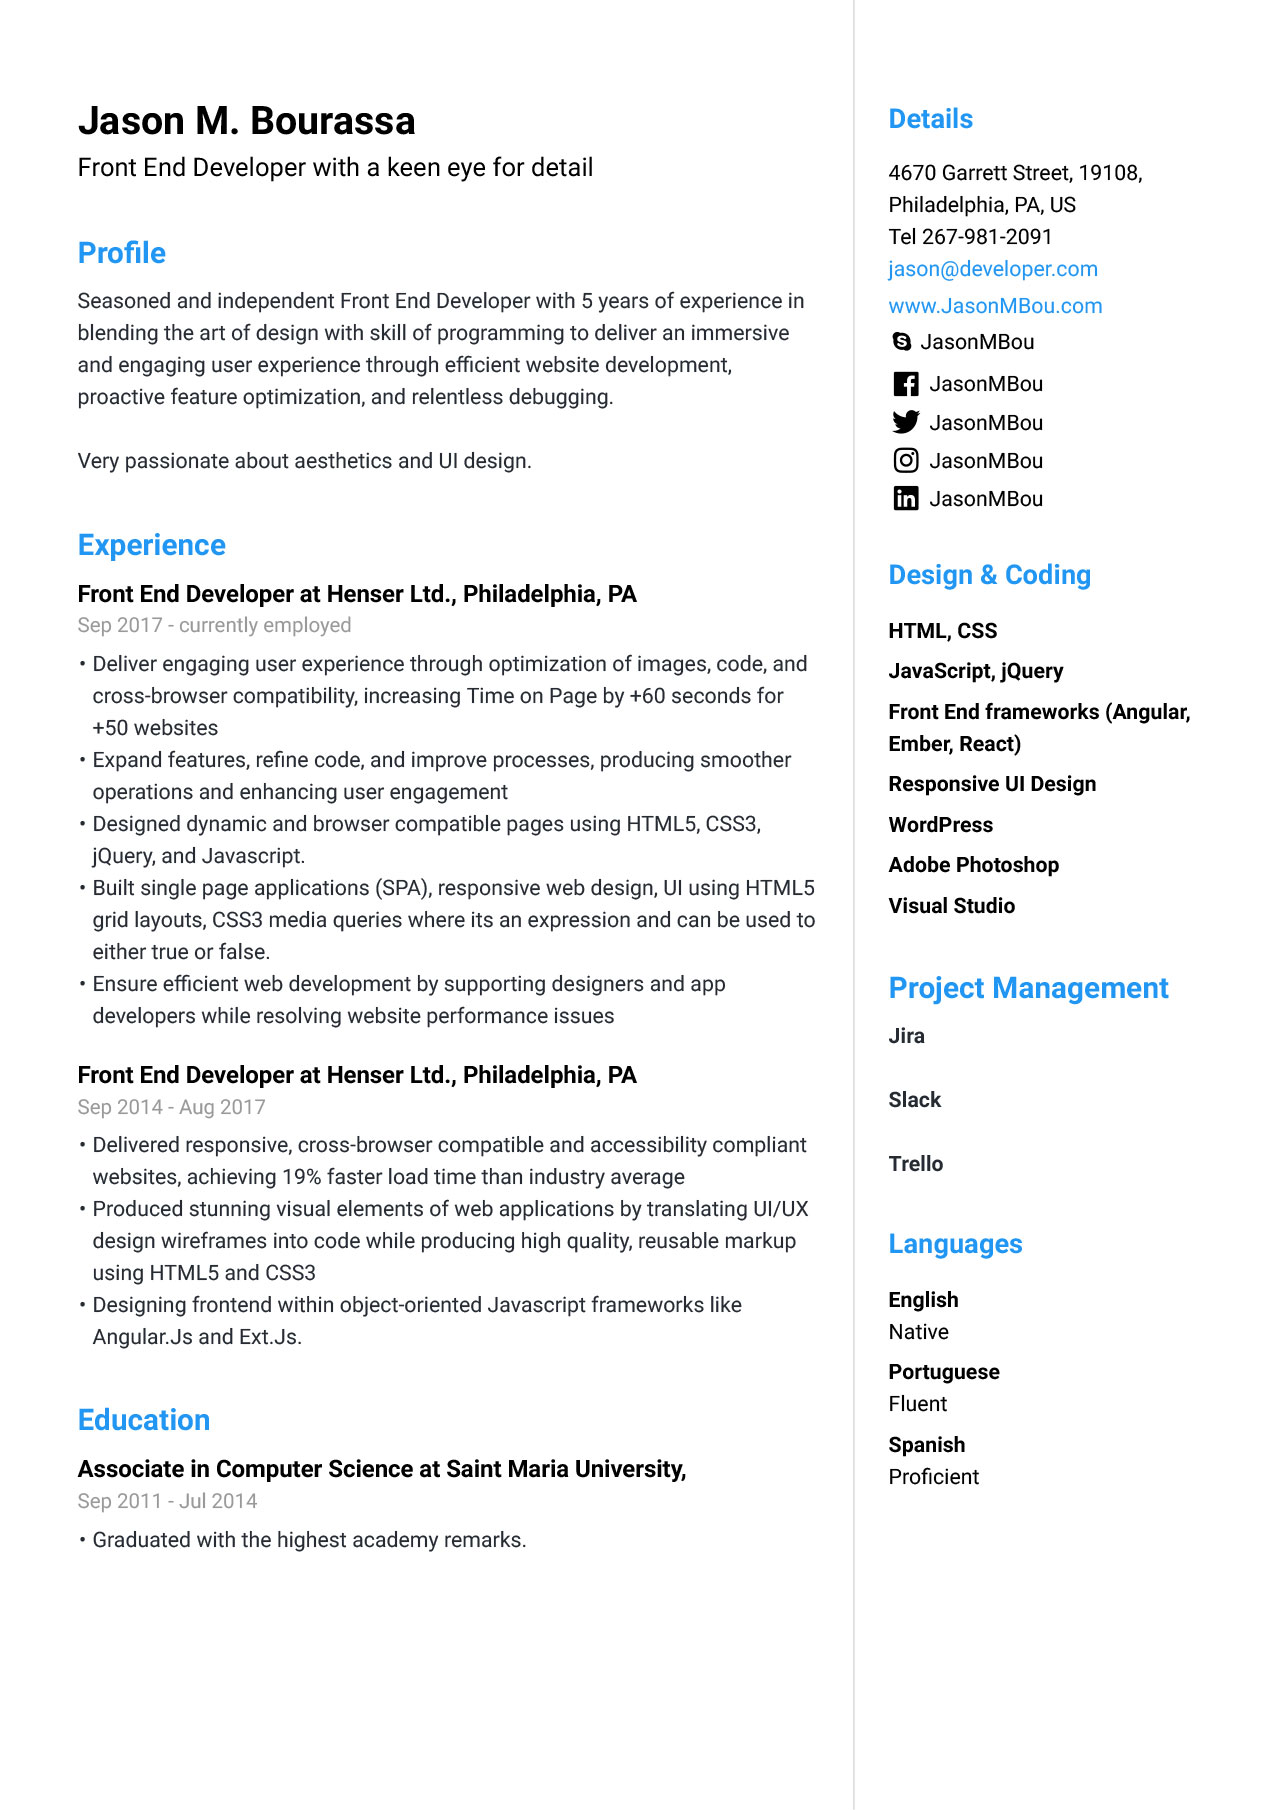 resume templates office mac best operations analyst front end web developer dismissed for Resume Resume Templates Office Mac